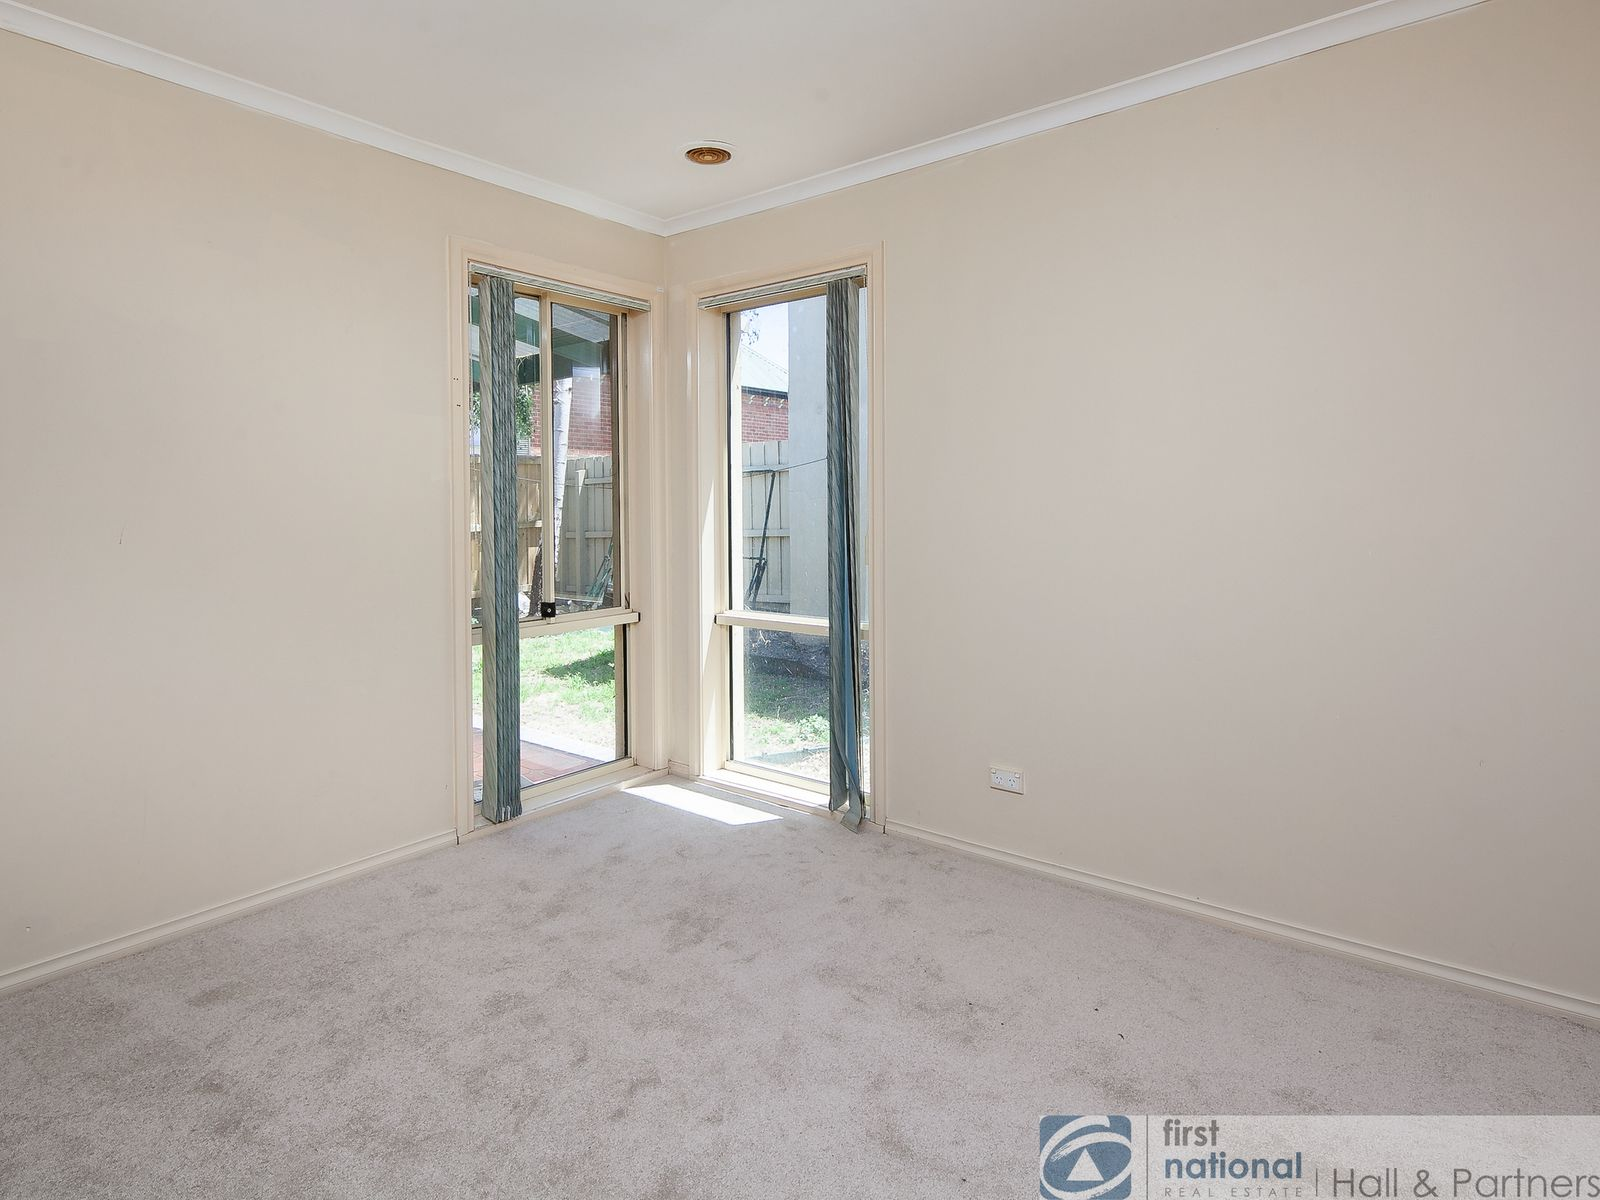 2/21 Hemmings Street, Dandenong, VIC 3175